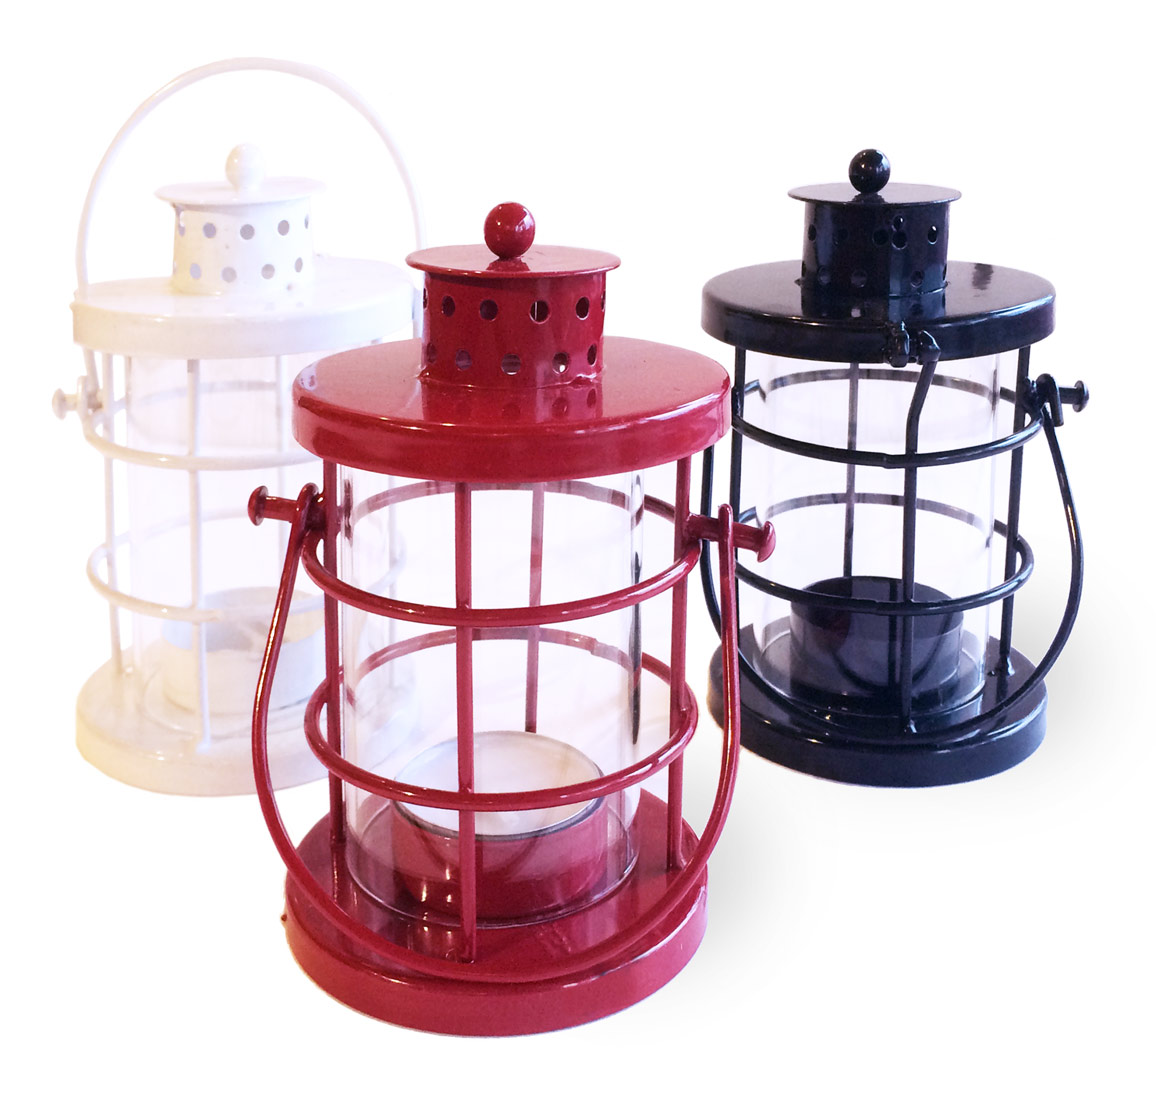 Image of Votive Lanterns, White Black and Red, Set of 3